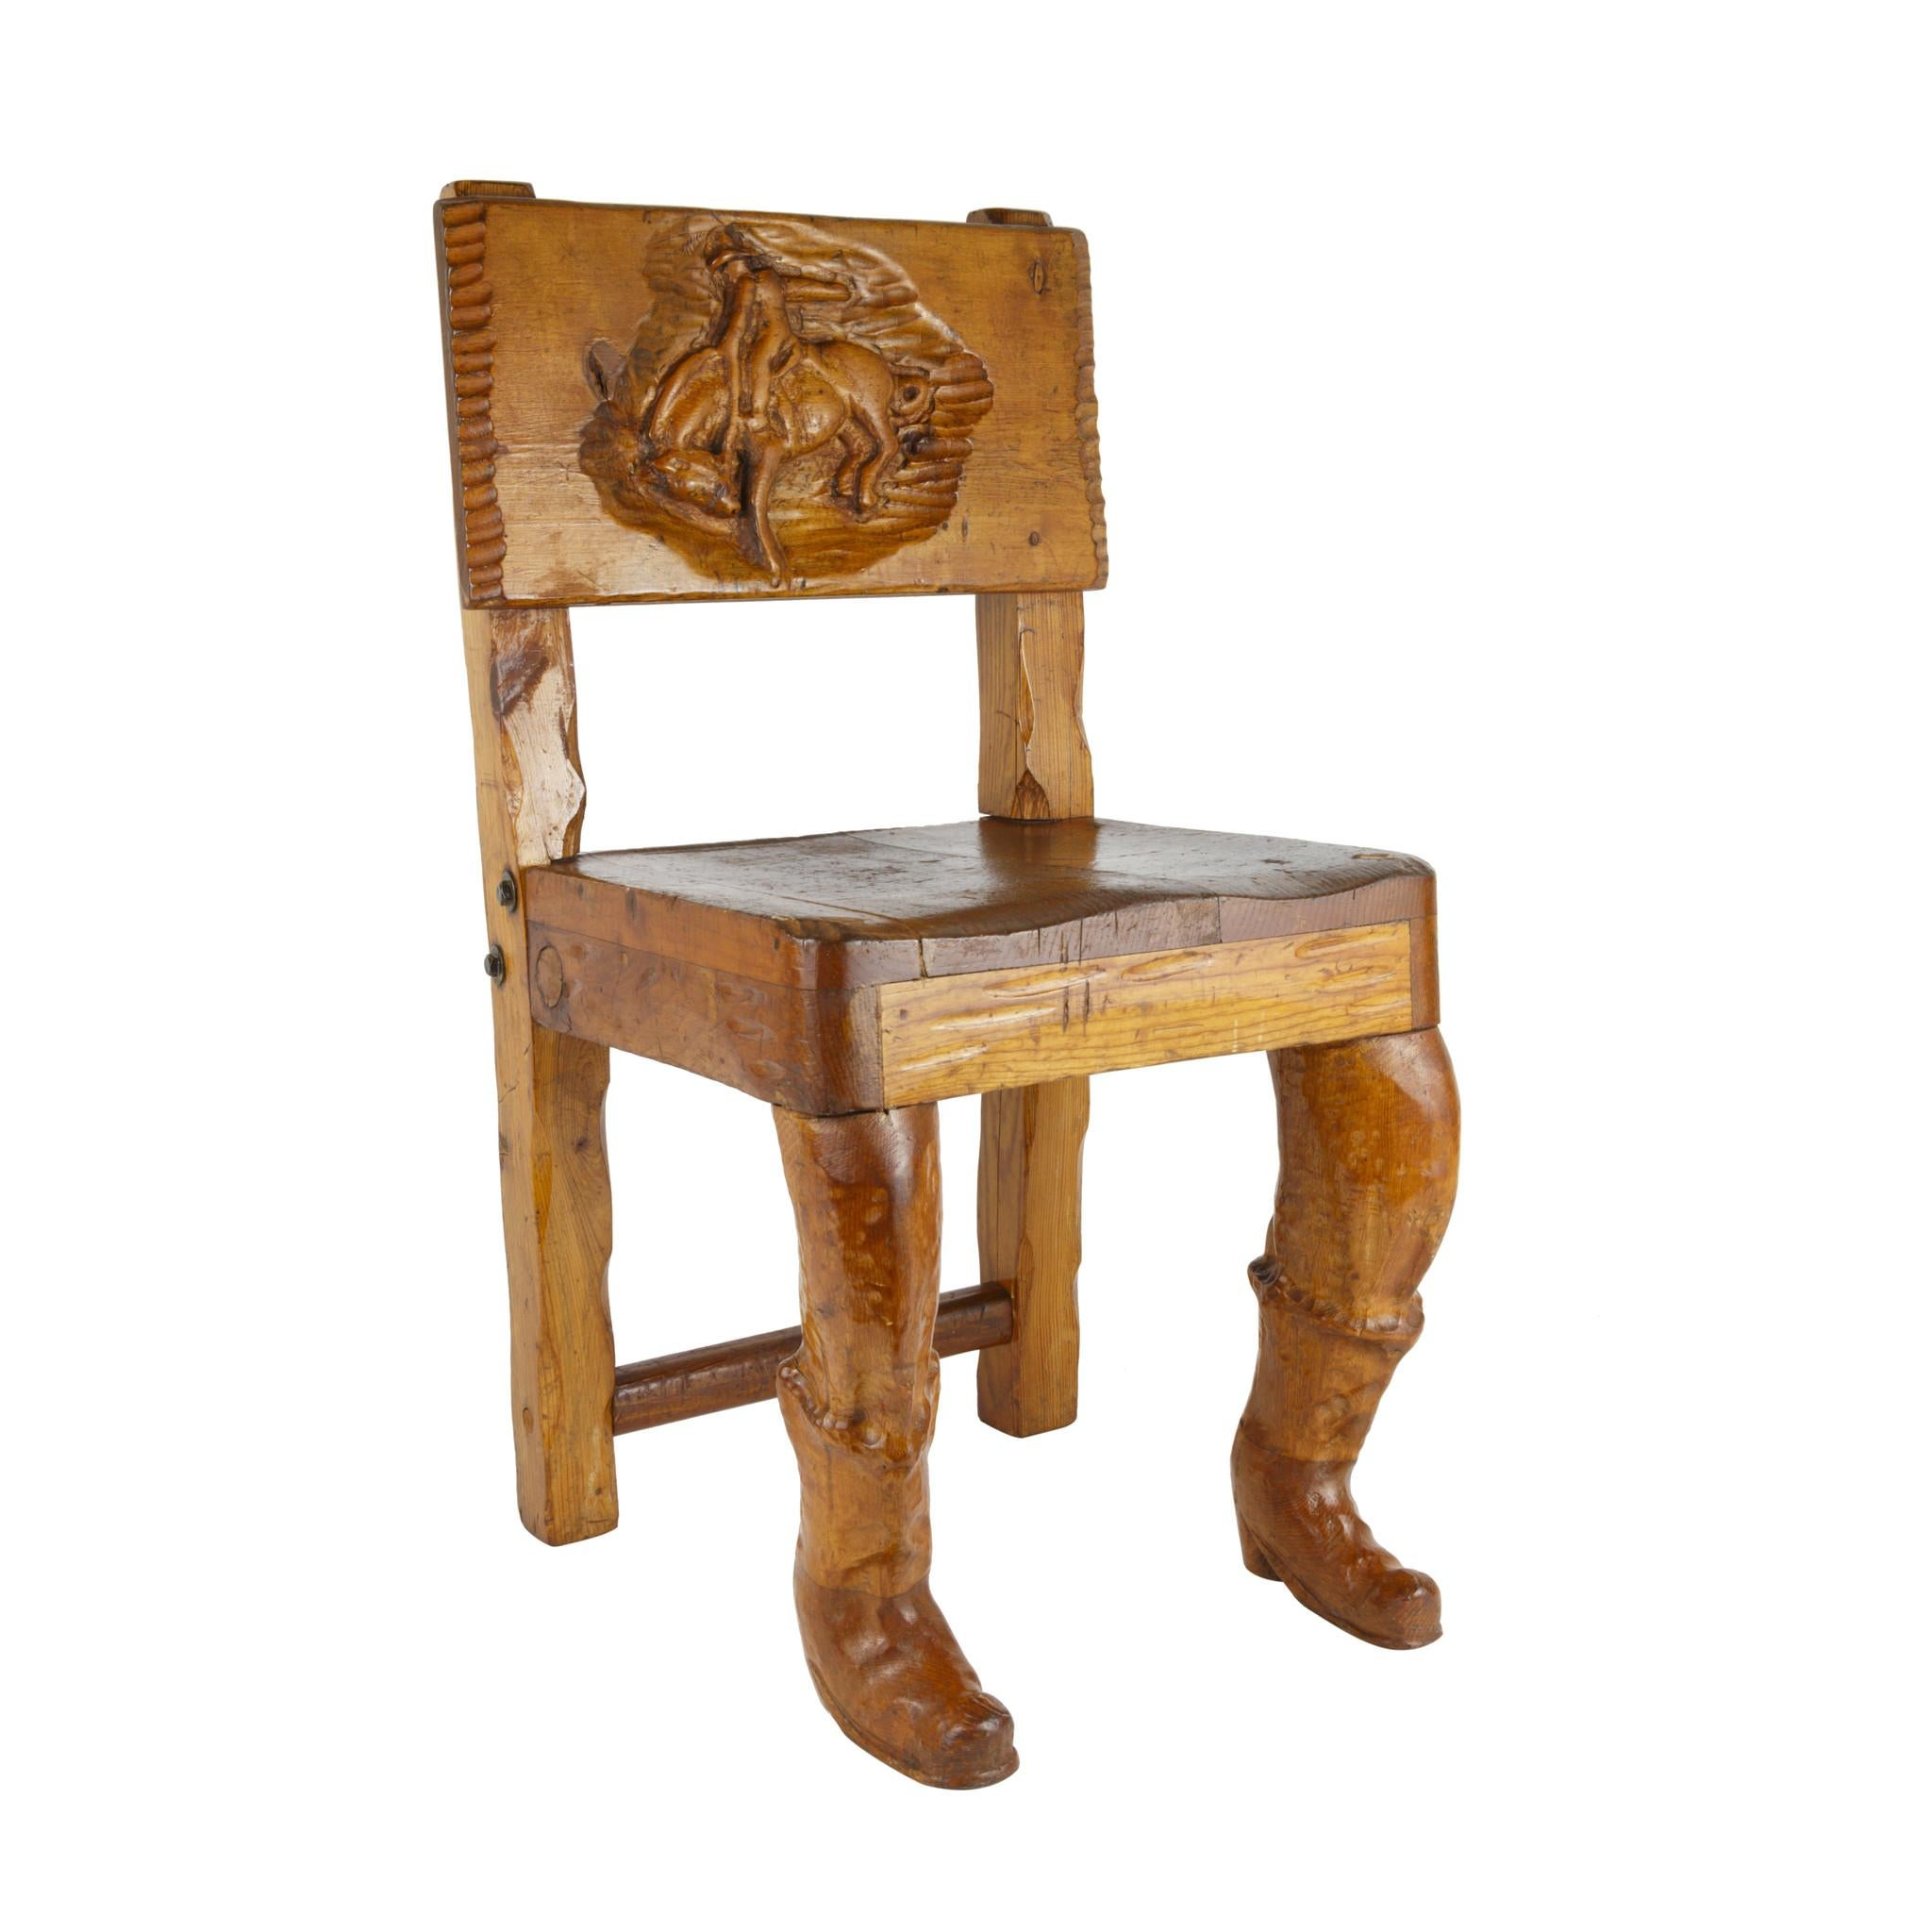 Western Themed Child's Chair